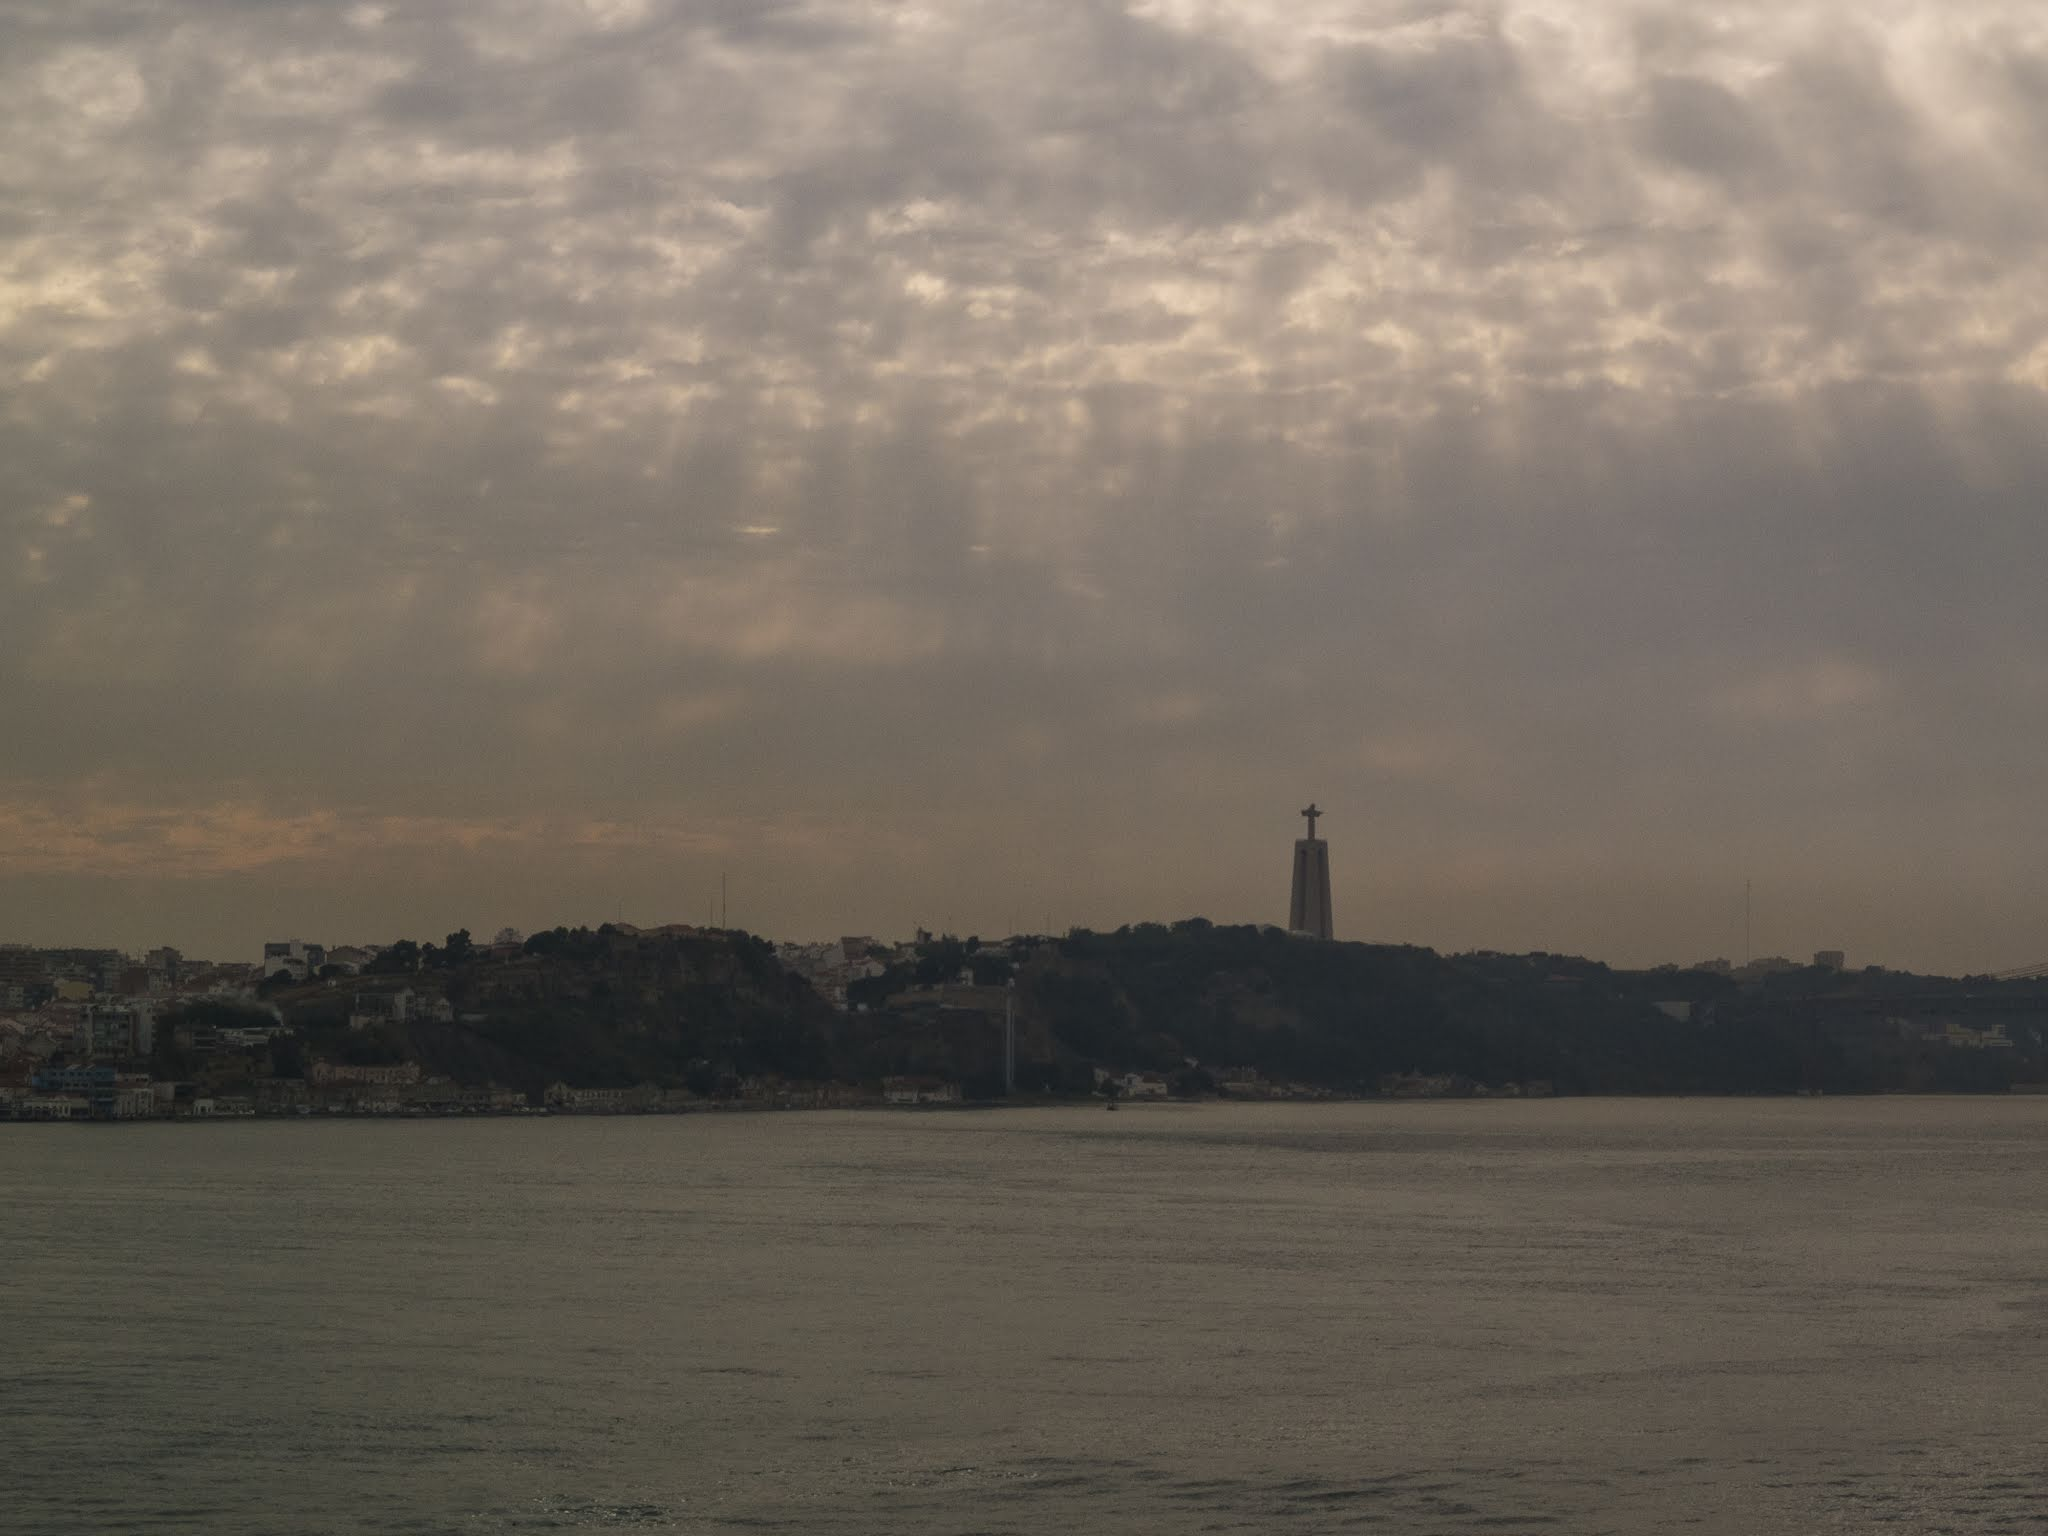 Sun shining through the clouds over the river Tagus in the port of Lisbon.